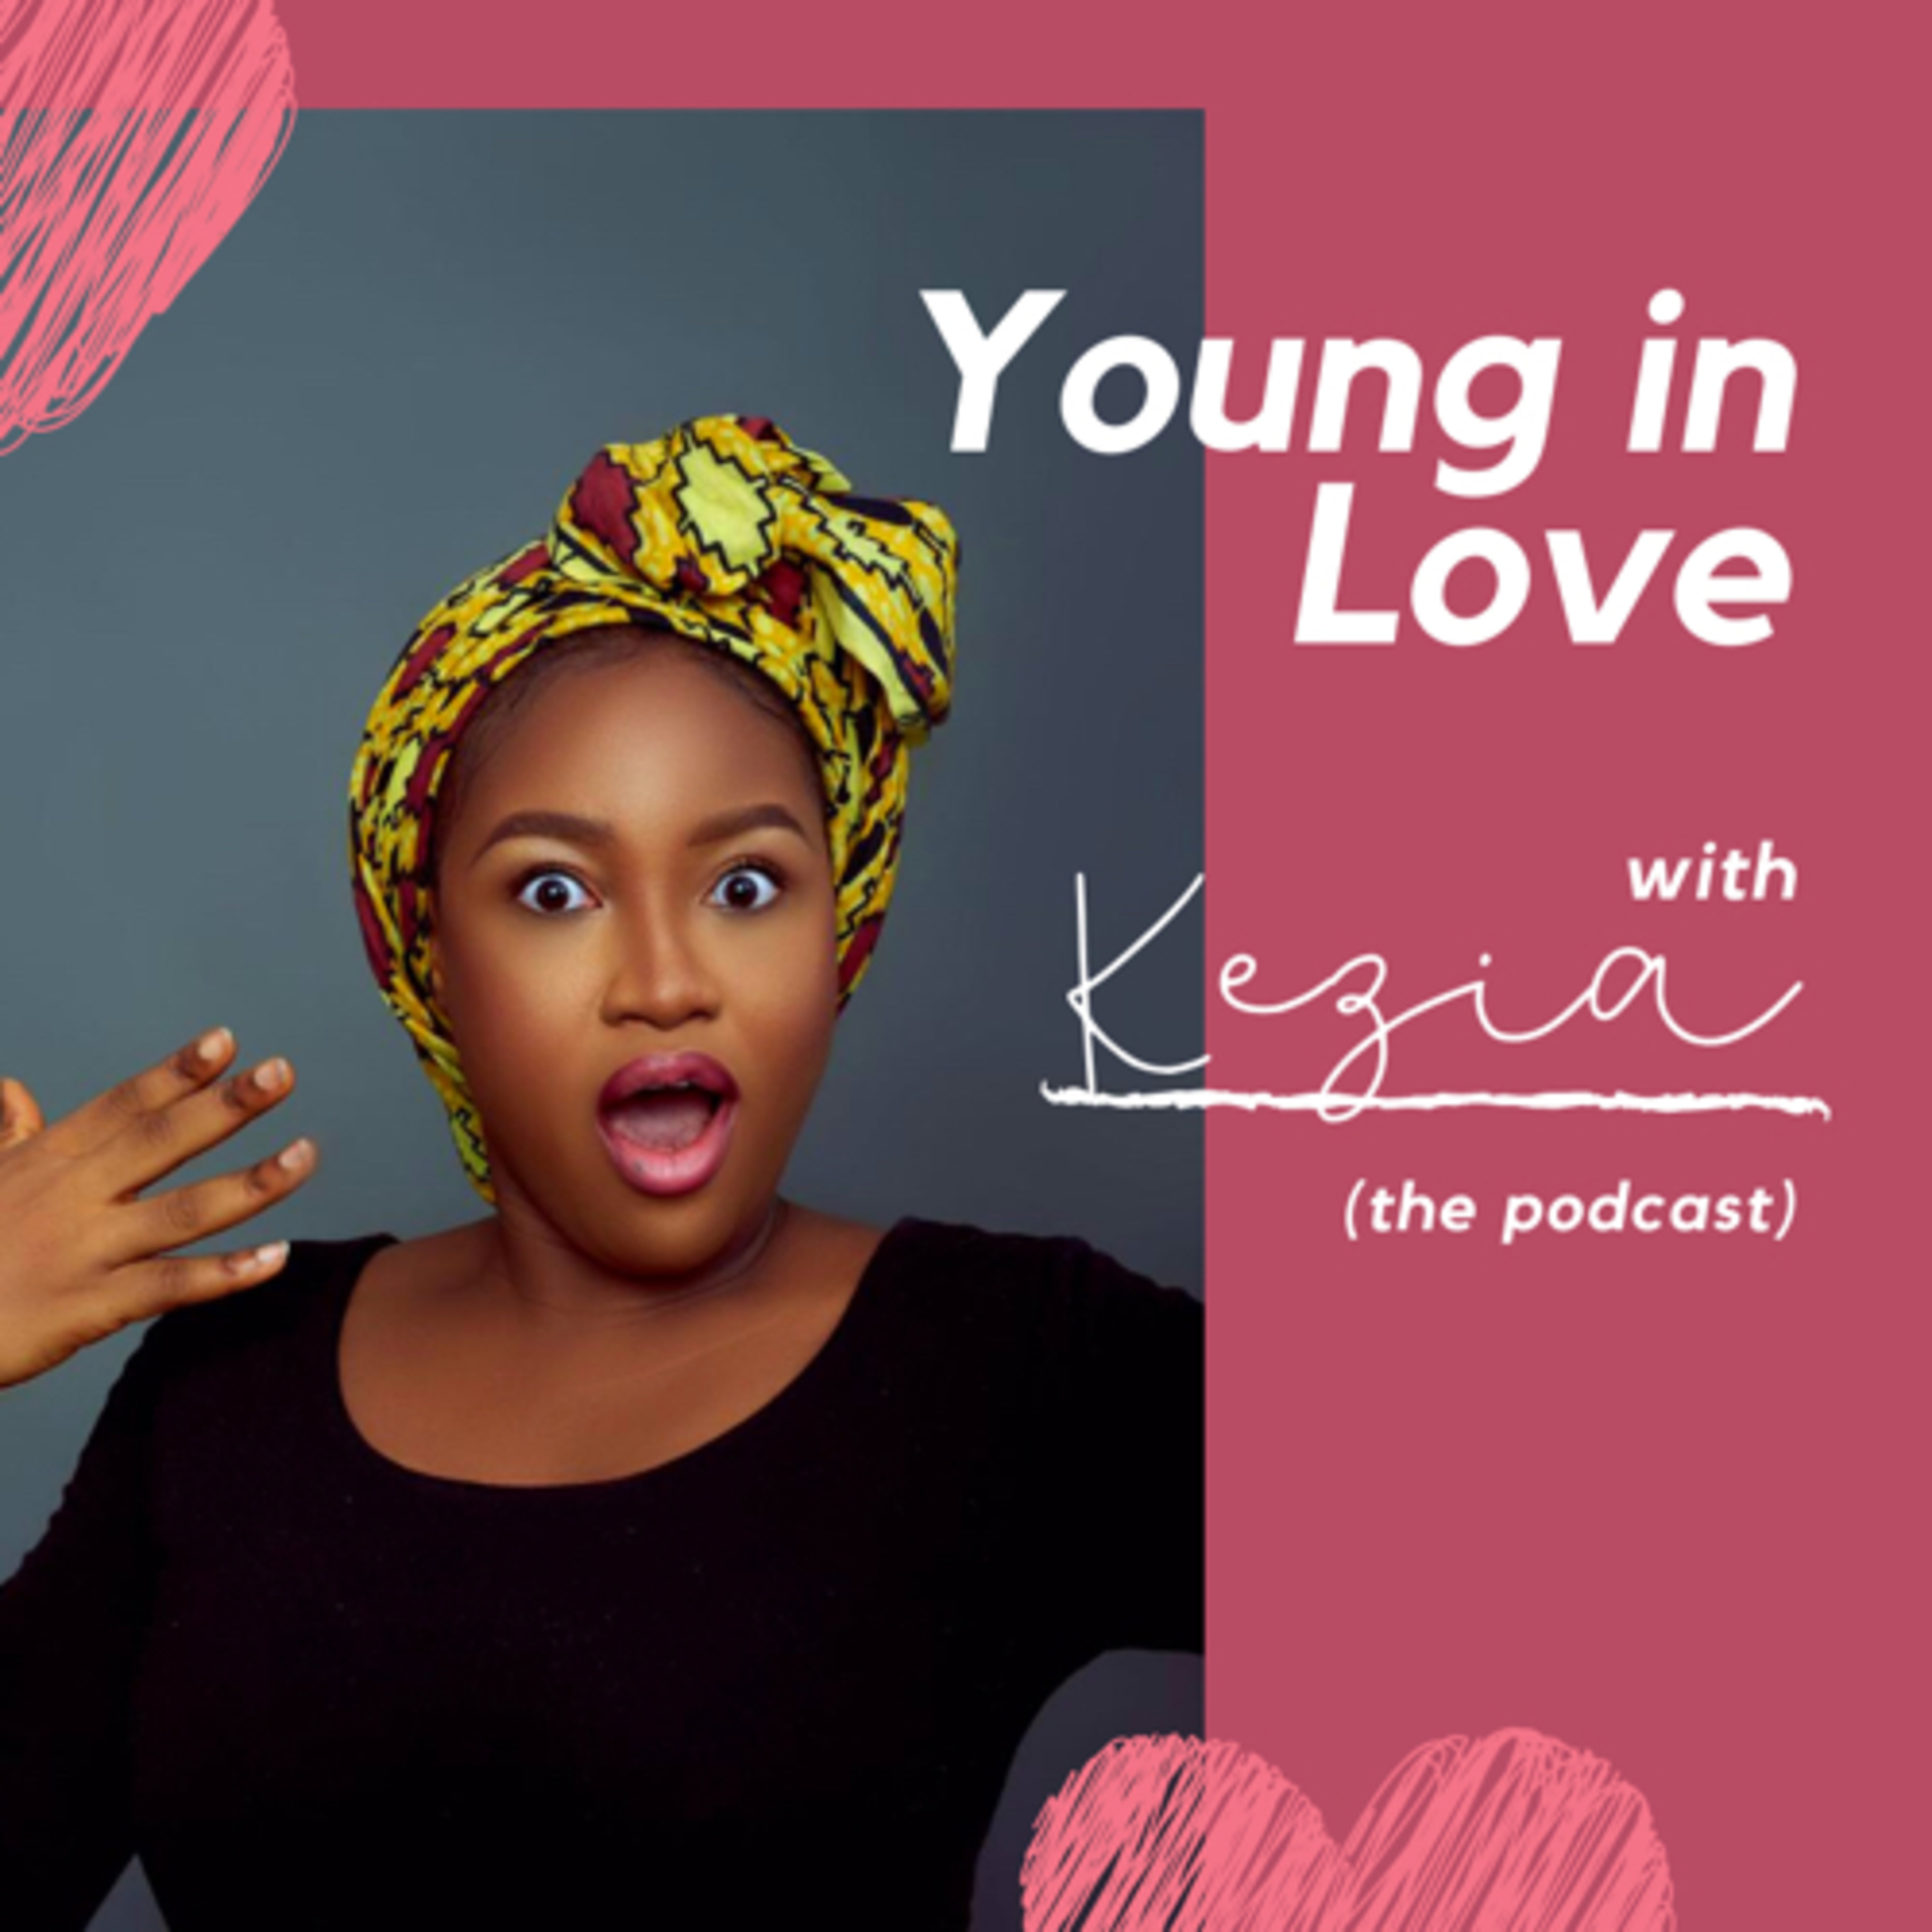 YOUNG IN LOVE podcast